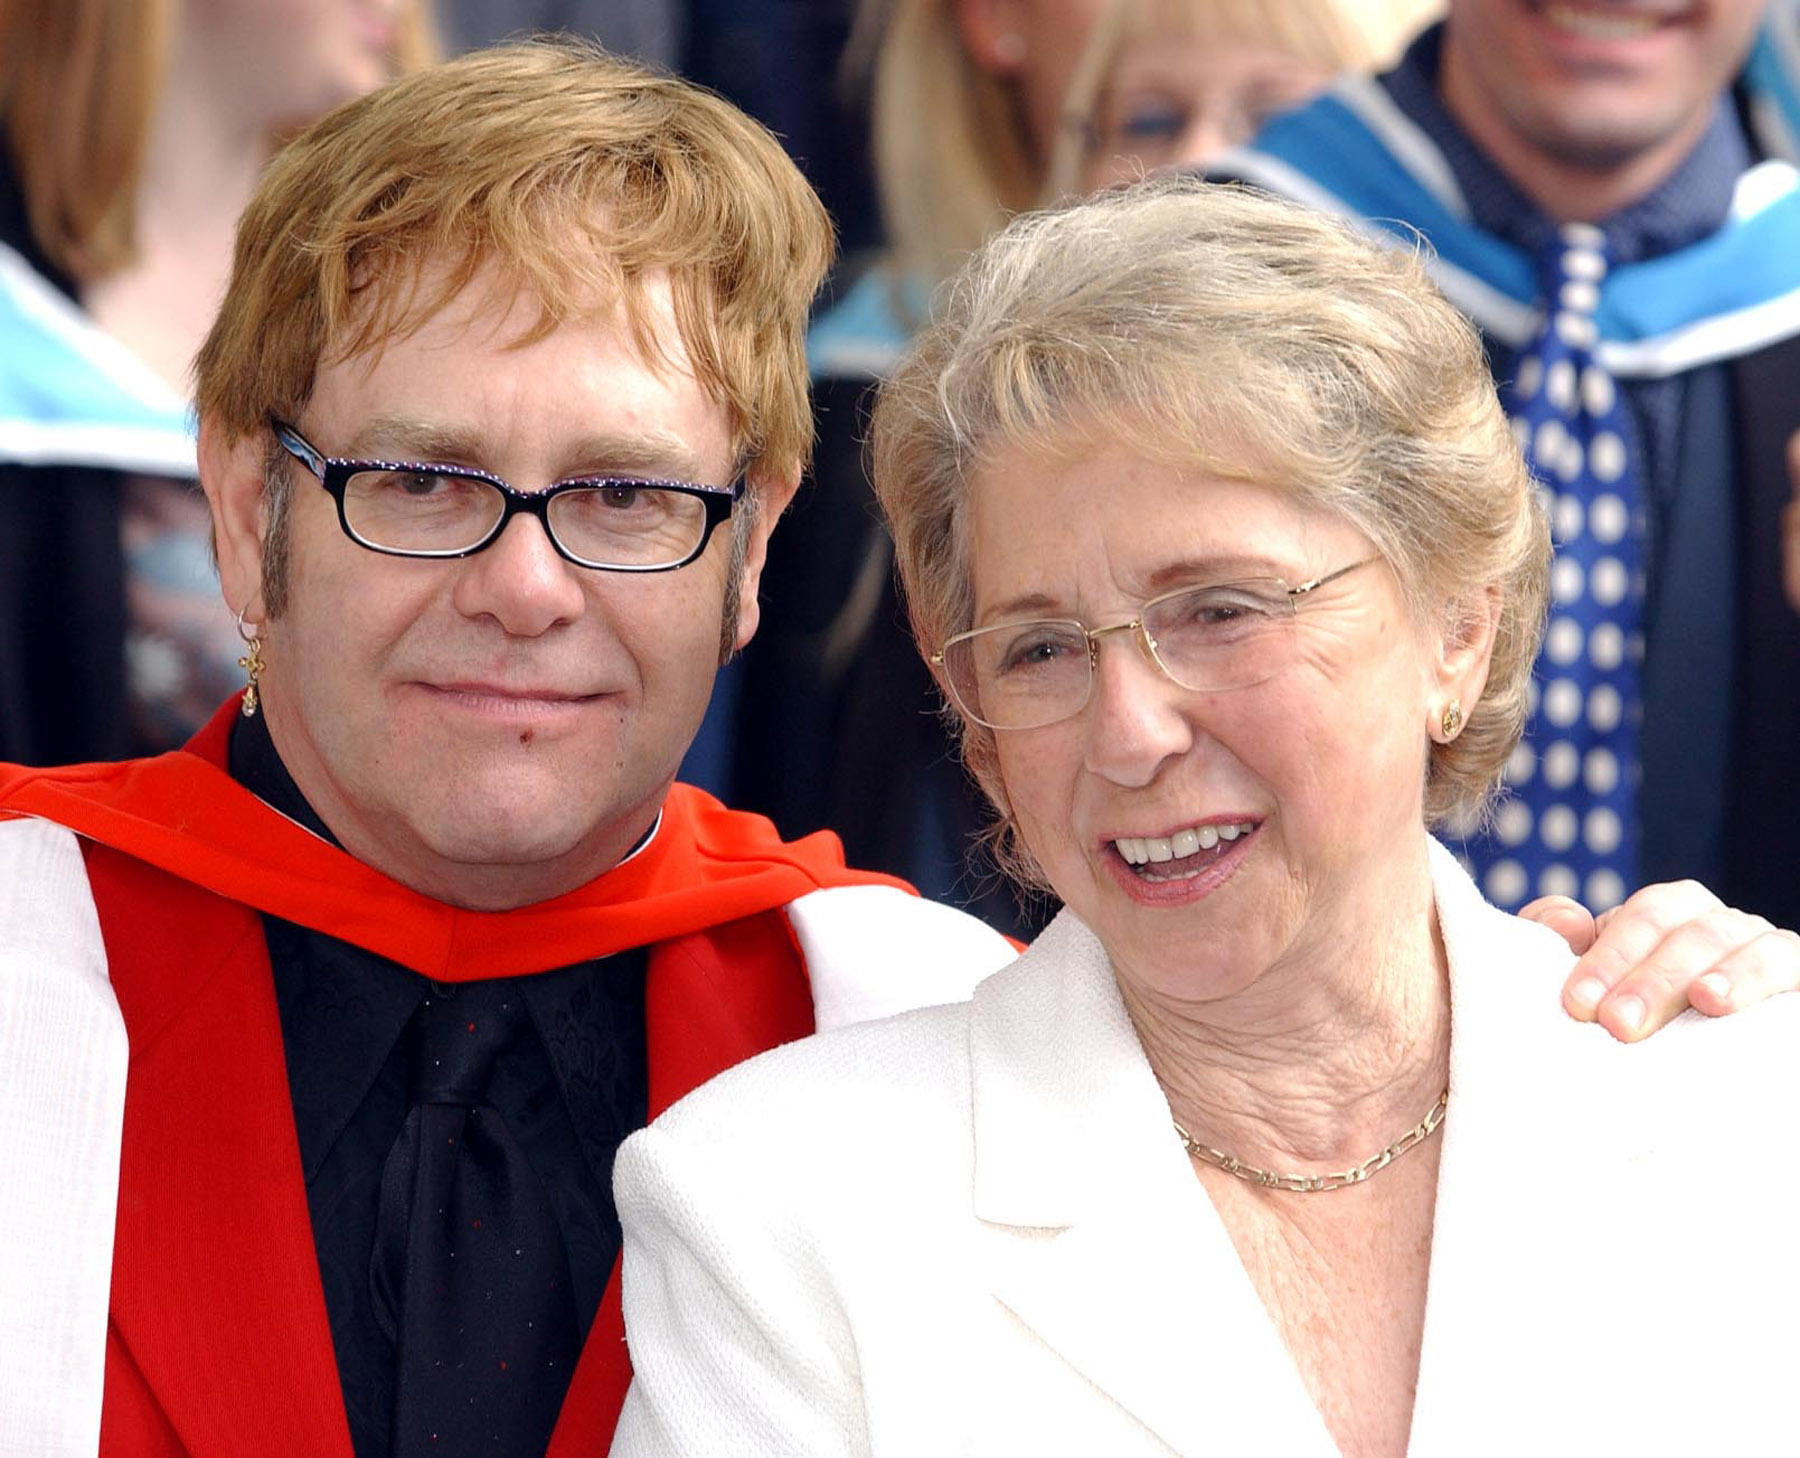 Elton John with mum Sheila Farebrother in 2002